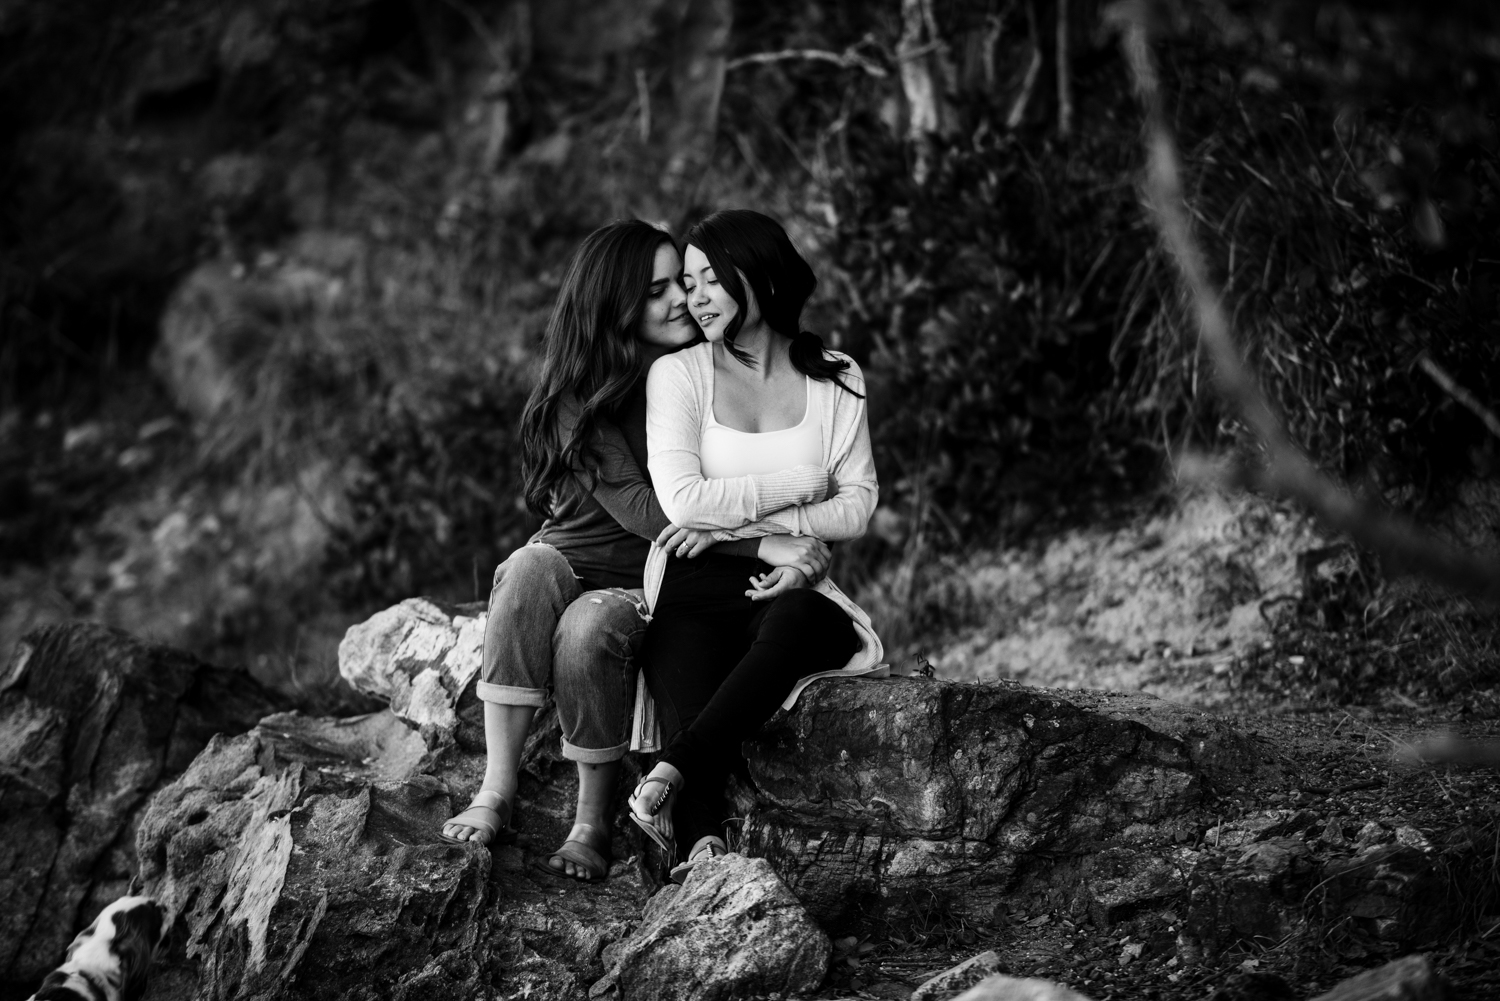 Brisbane Lesbian Wedding Photographer | Same-Sex Engagement-Elopement Photography-10.jpg